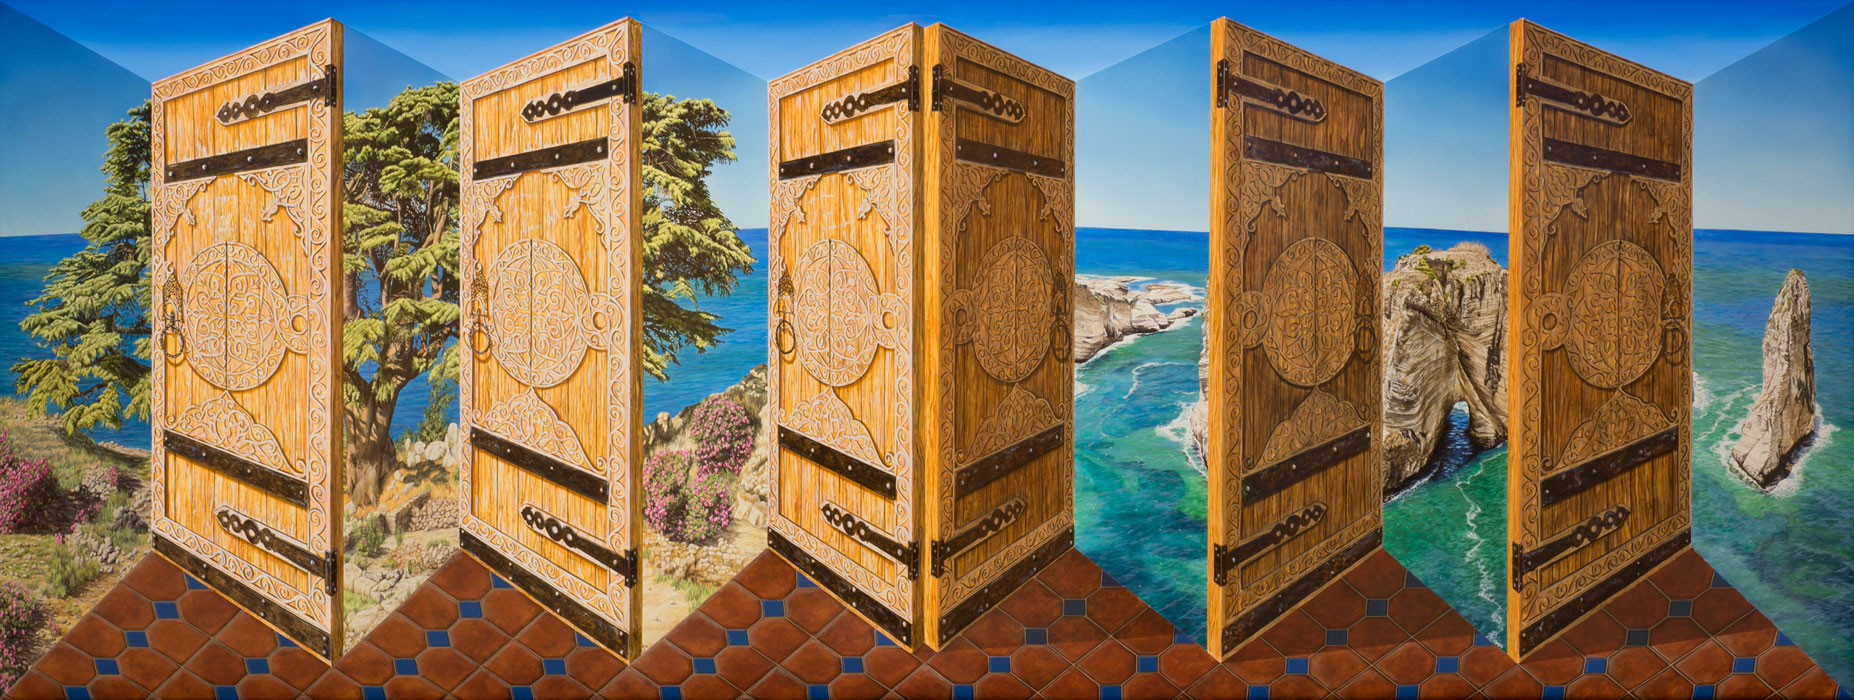 The Lebanon out of Doors <p>2013 | 89.5 X 207 X 21 cm / 35¼ x 81½ x 8¼ in</p>